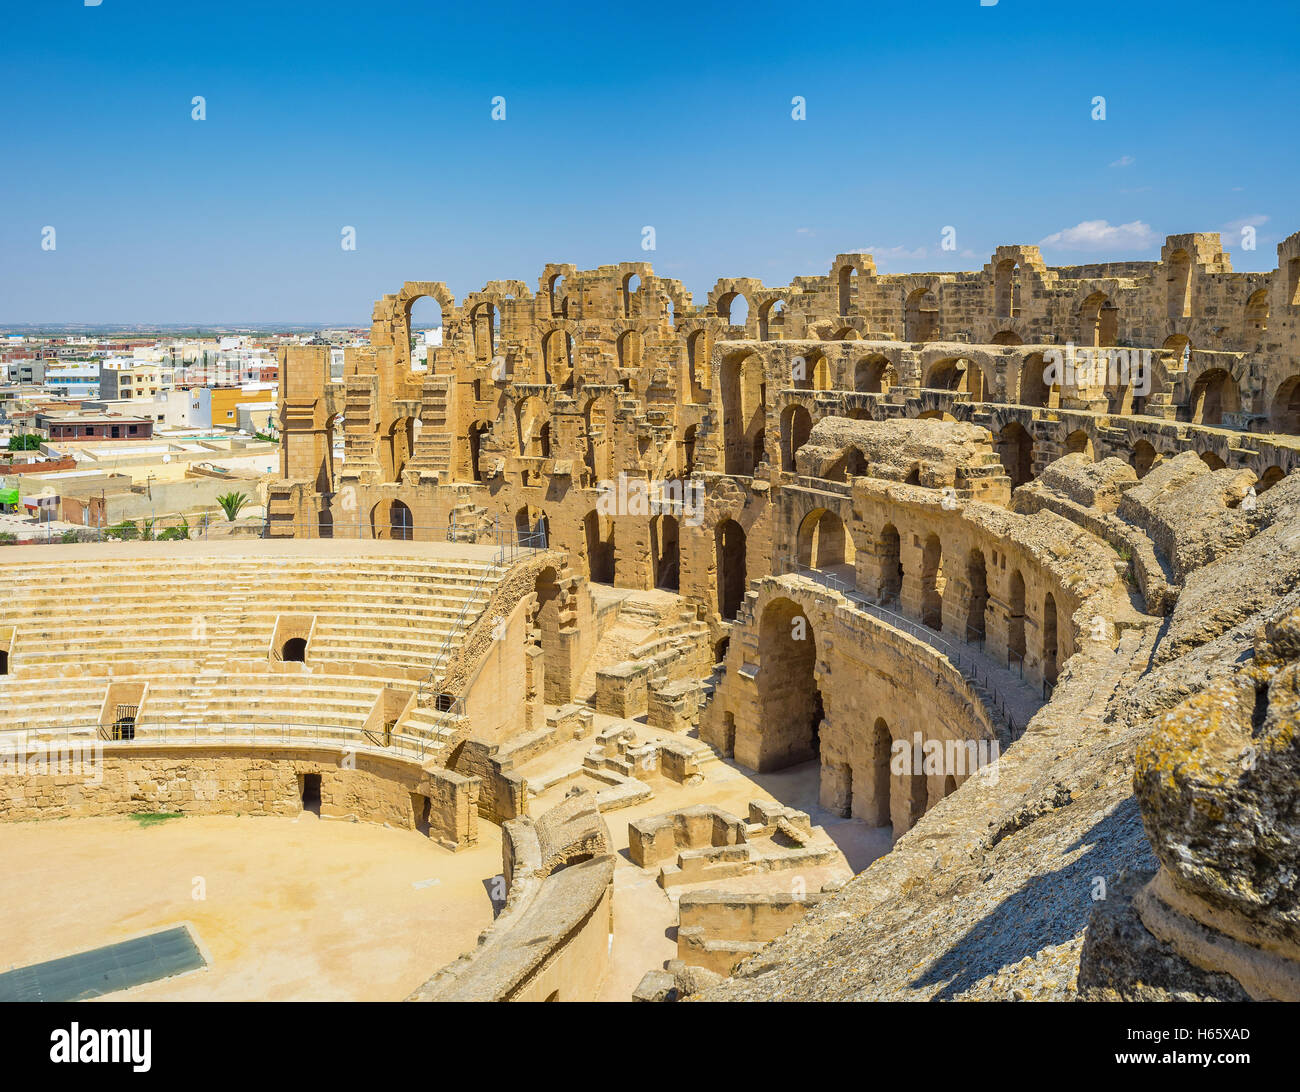 The famous amphitheatre of El Jem is one of the best preserved landmarks of roman period, Tunisia. Stock Photo